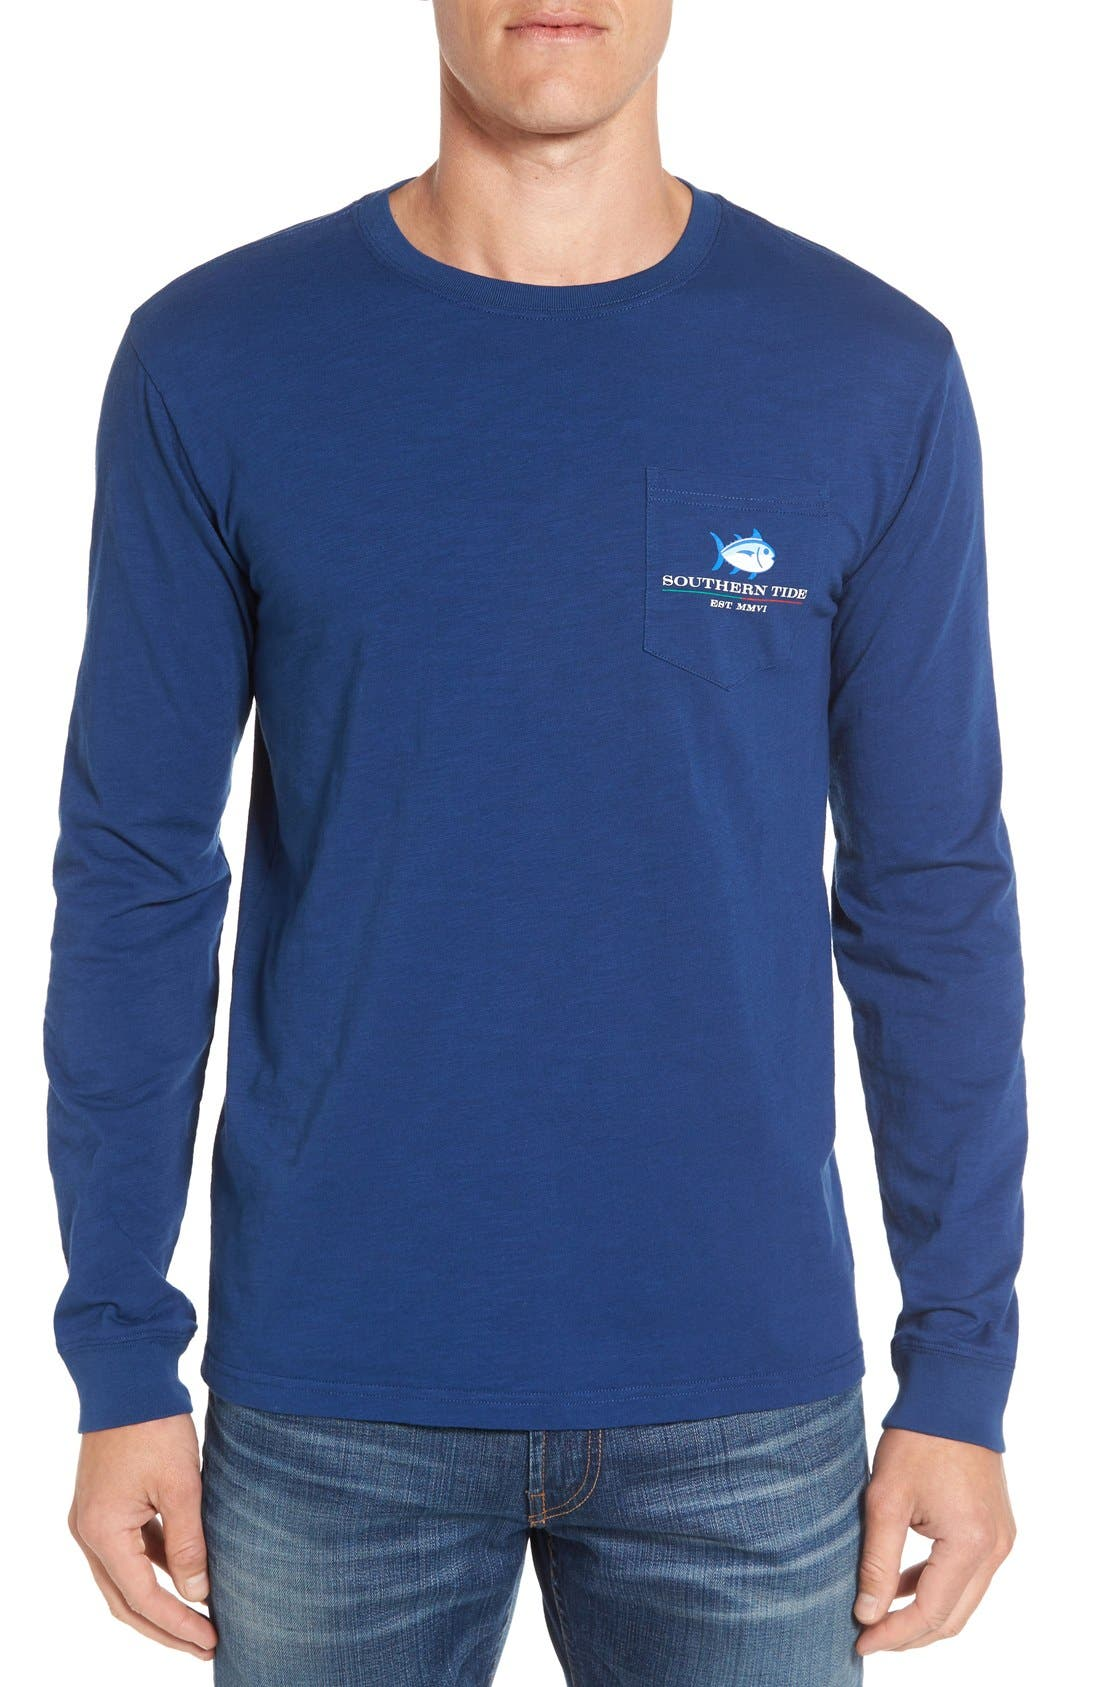 'Channel Marker' Graphic Pocket Long Sleeve T-Shirt,                             Alternate thumbnail 3, color,                             Yacht Blue